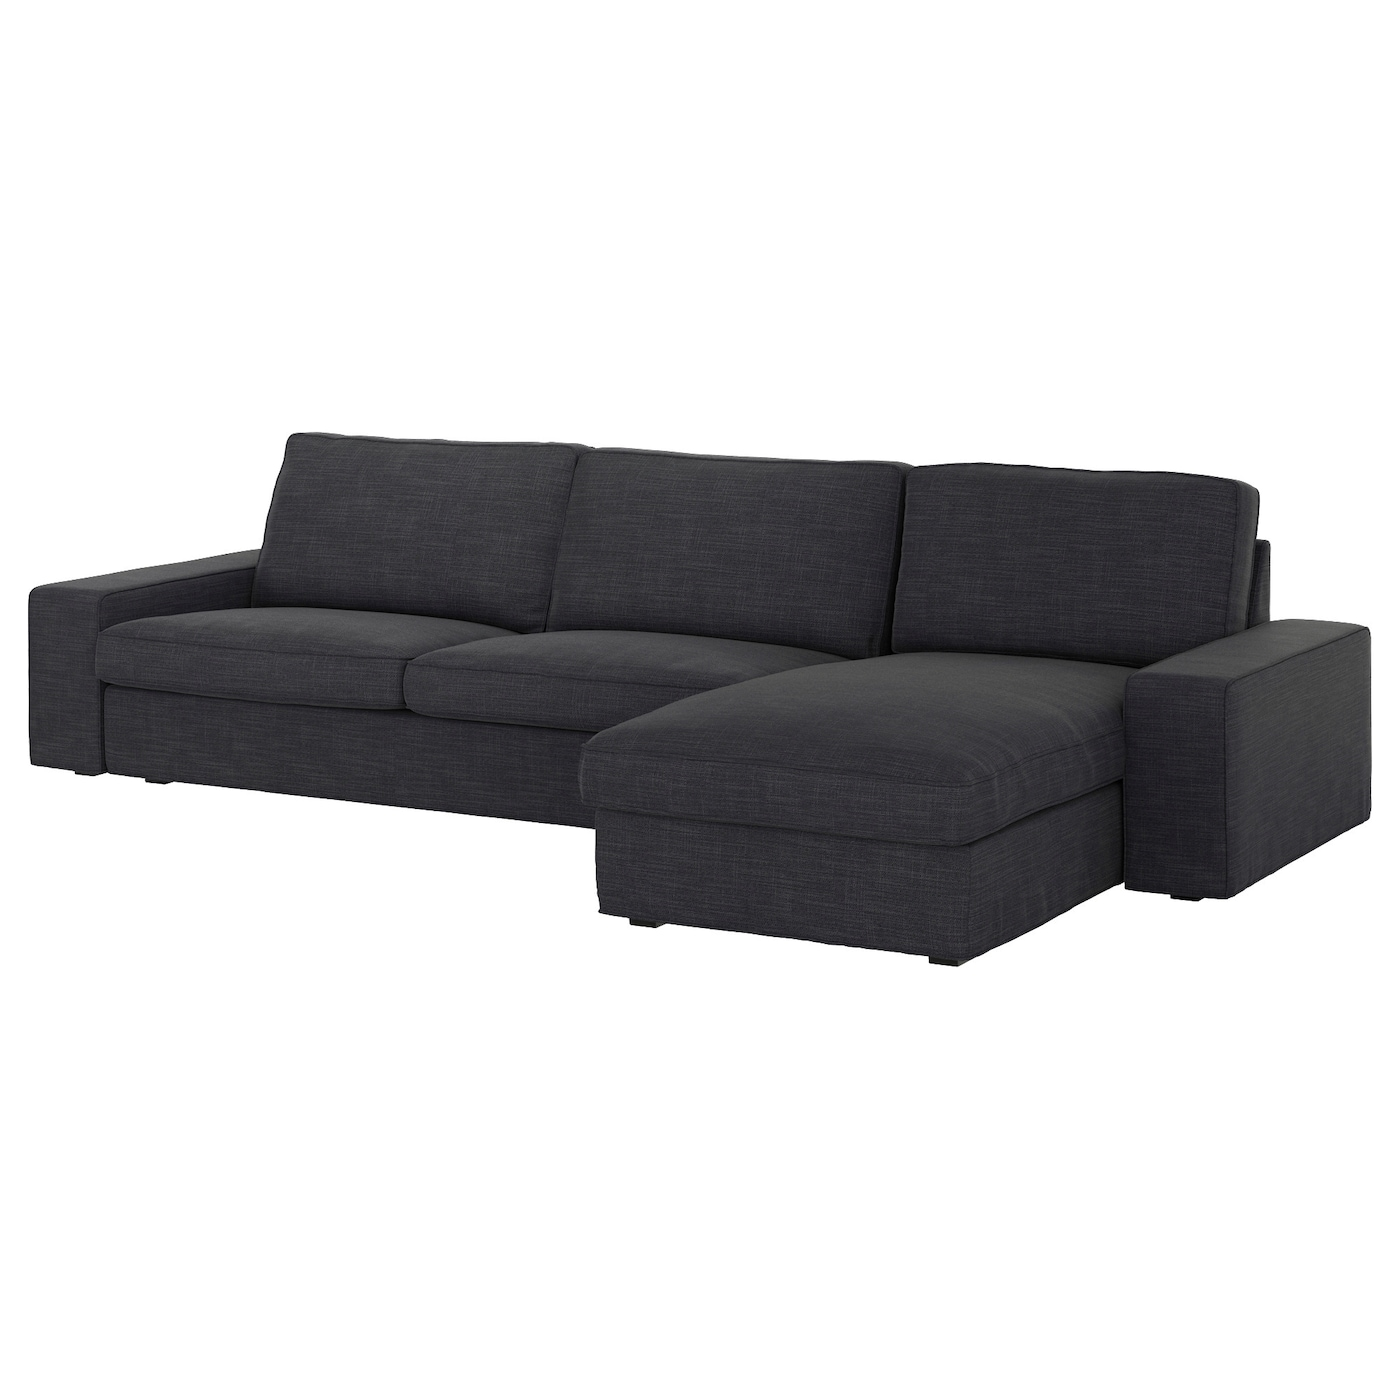 kivik three seat sofa and chaise longue hillared. Black Bedroom Furniture Sets. Home Design Ideas